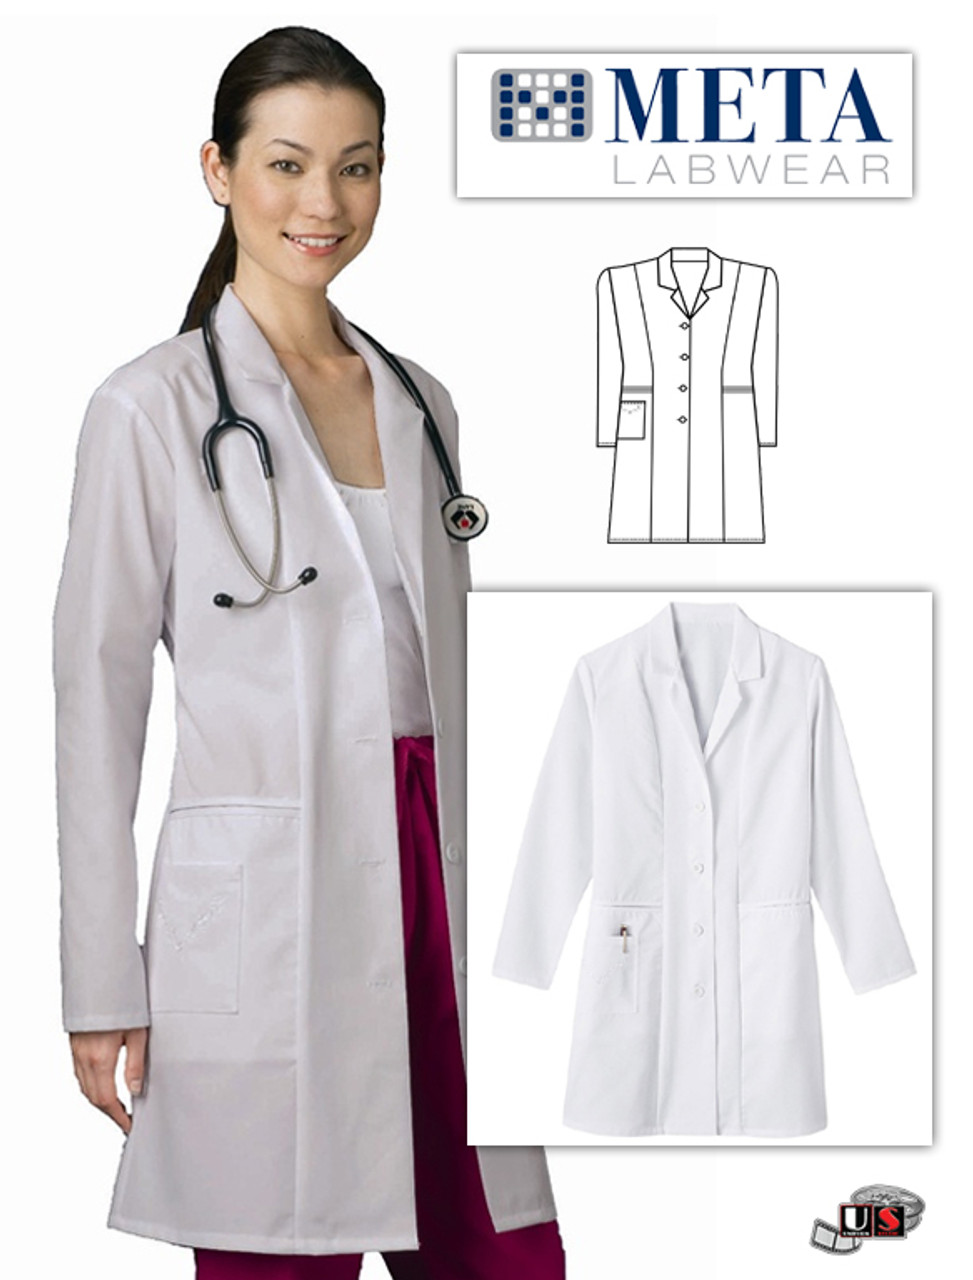 Figure 1: A great example of crisp white lab coats with logo embroidered on  the